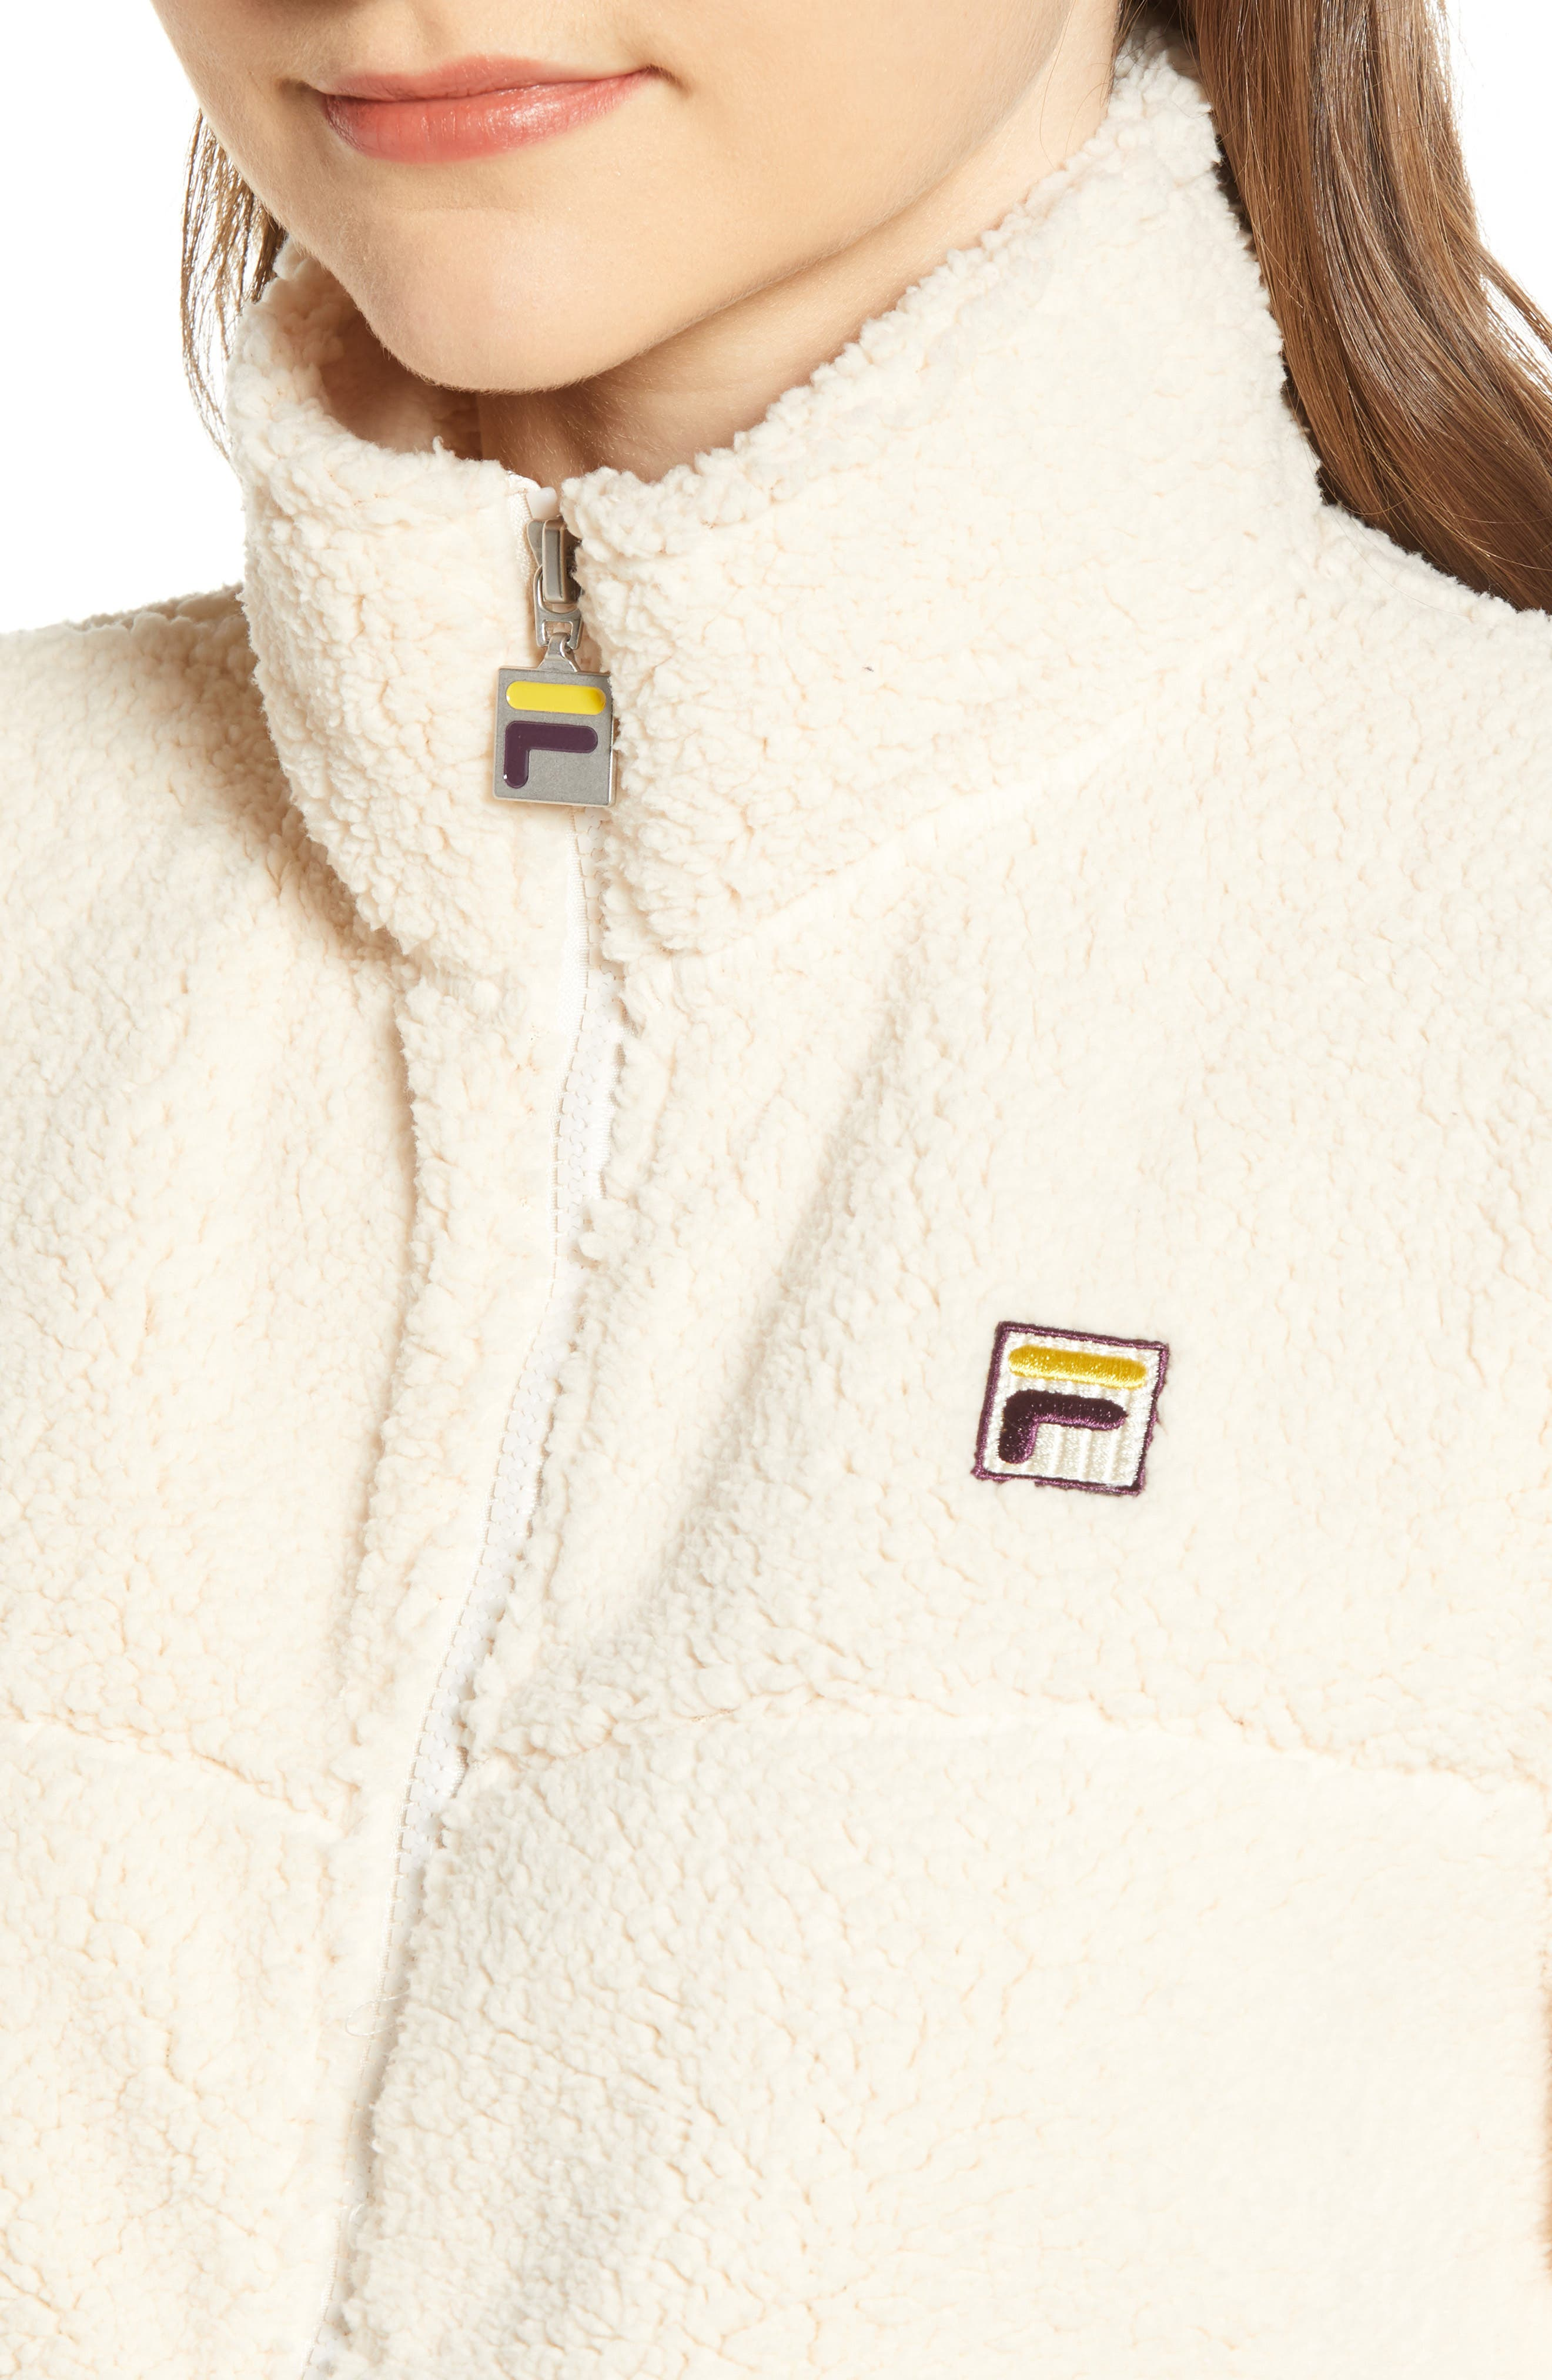 FILA, Islae Fleece Jacket, Alternate thumbnail 5, color, 250